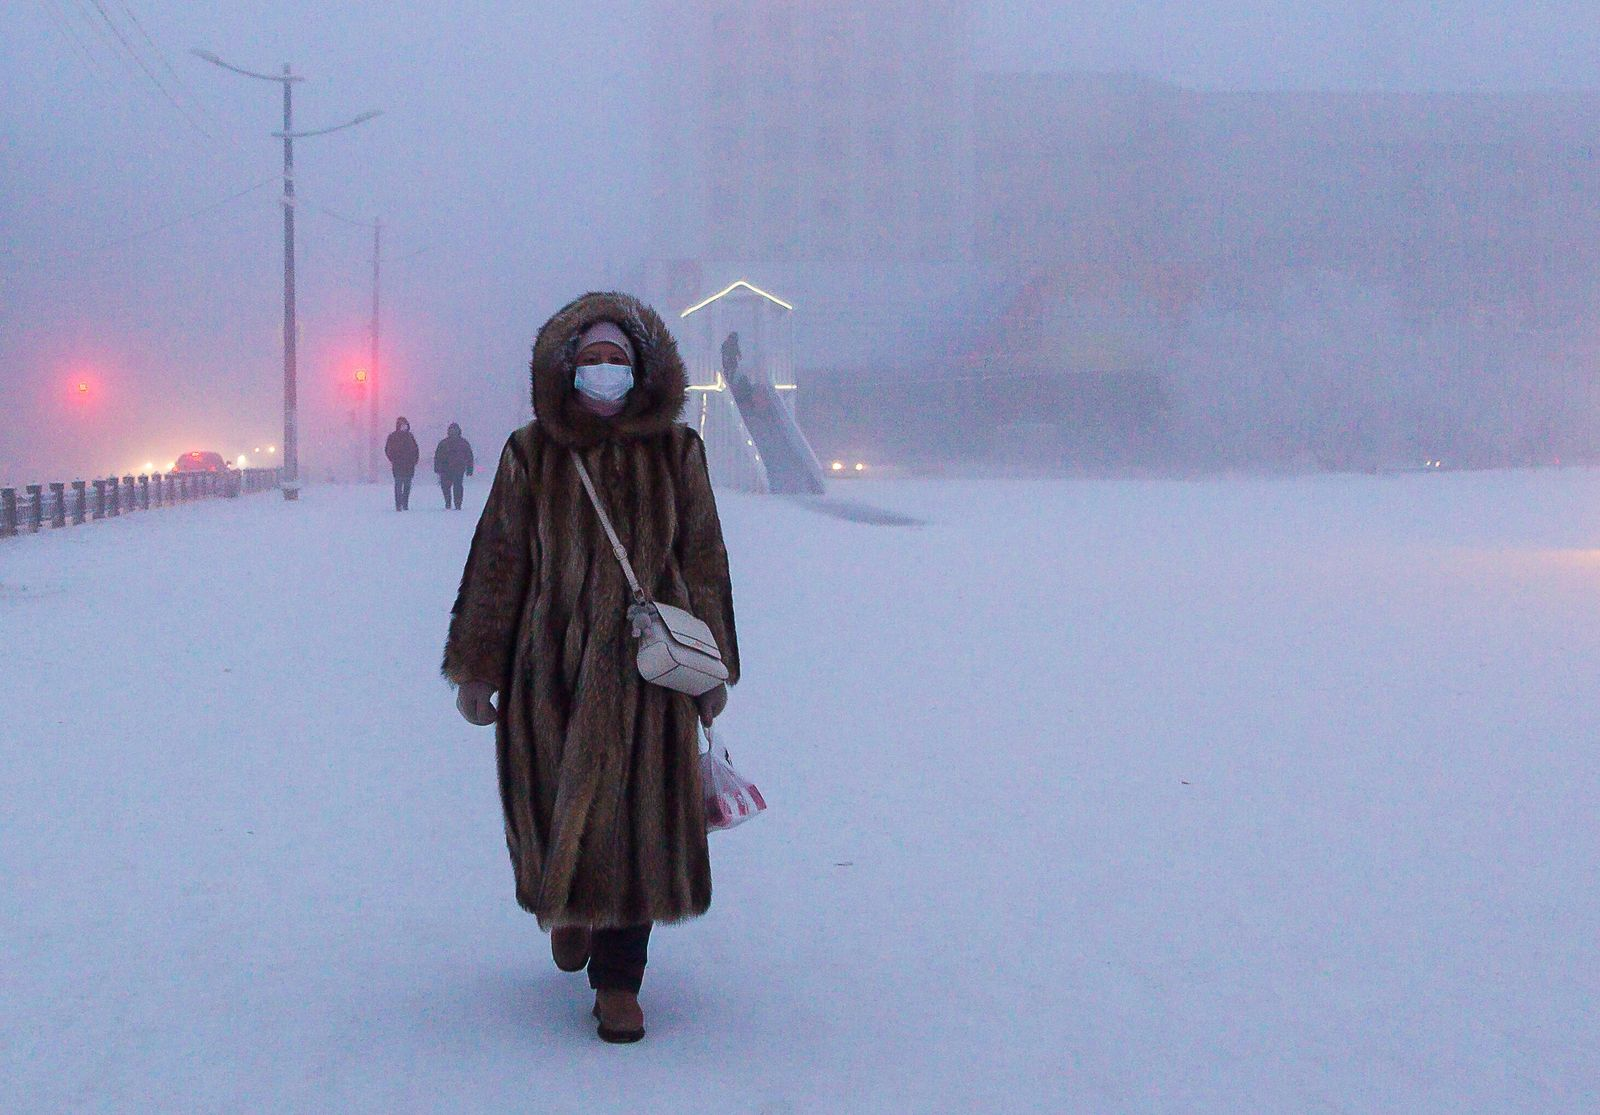 YAKUTSK, RUSSIA - DECEMBER 13, 2020: A local woman walks in Lenin Square in freezing conditions of minus 43 degrees Cels